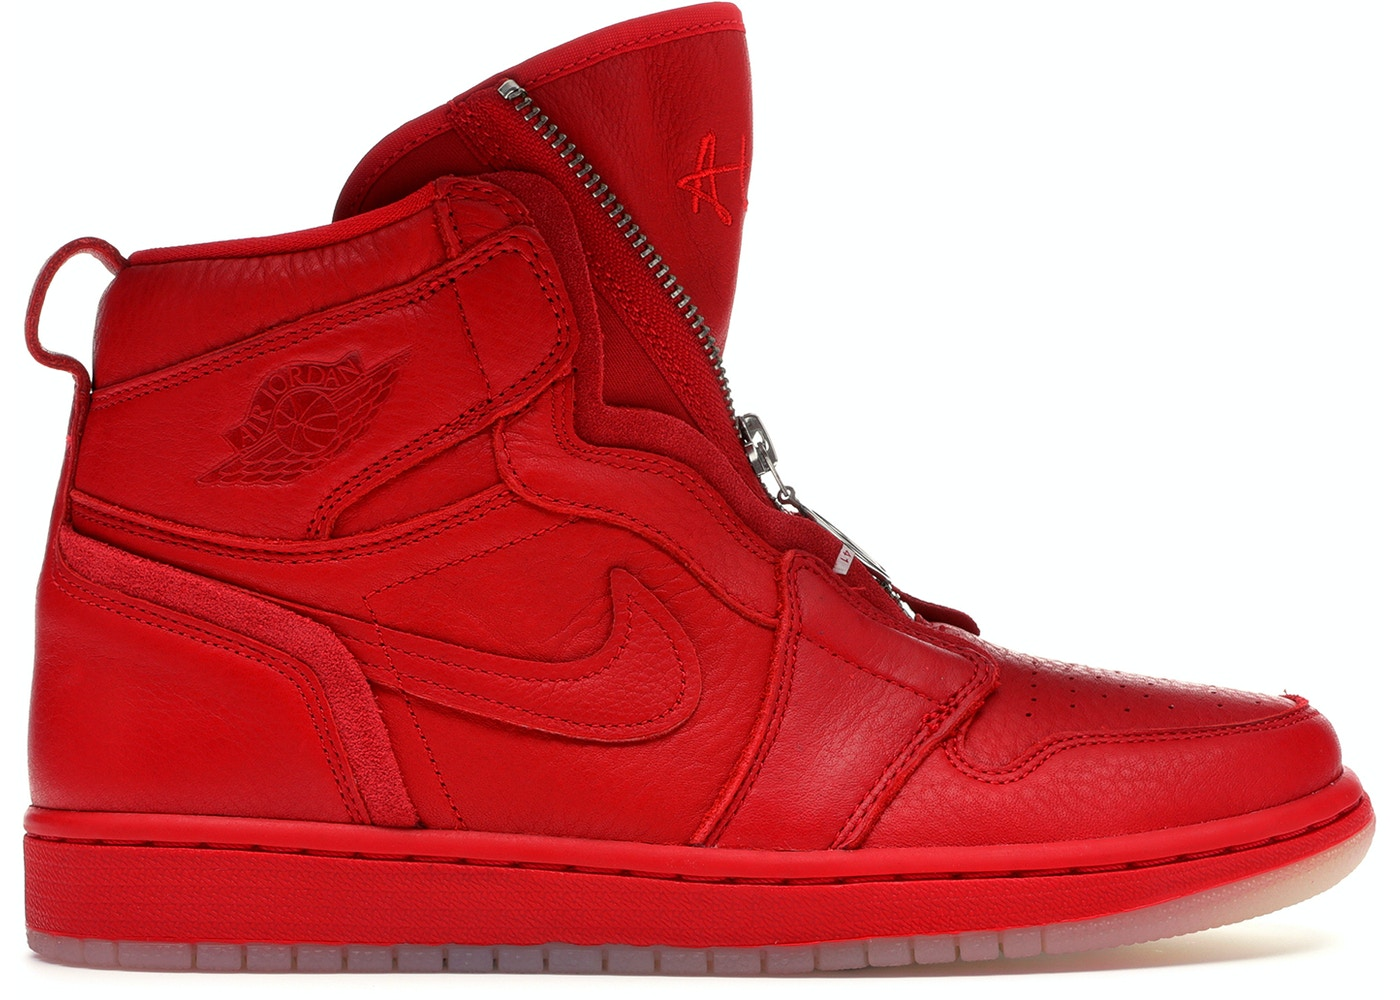 5facc4a2623b Jordan 1 Retro High Zip AWOK Vogue University Red (W) - BQ0864-601